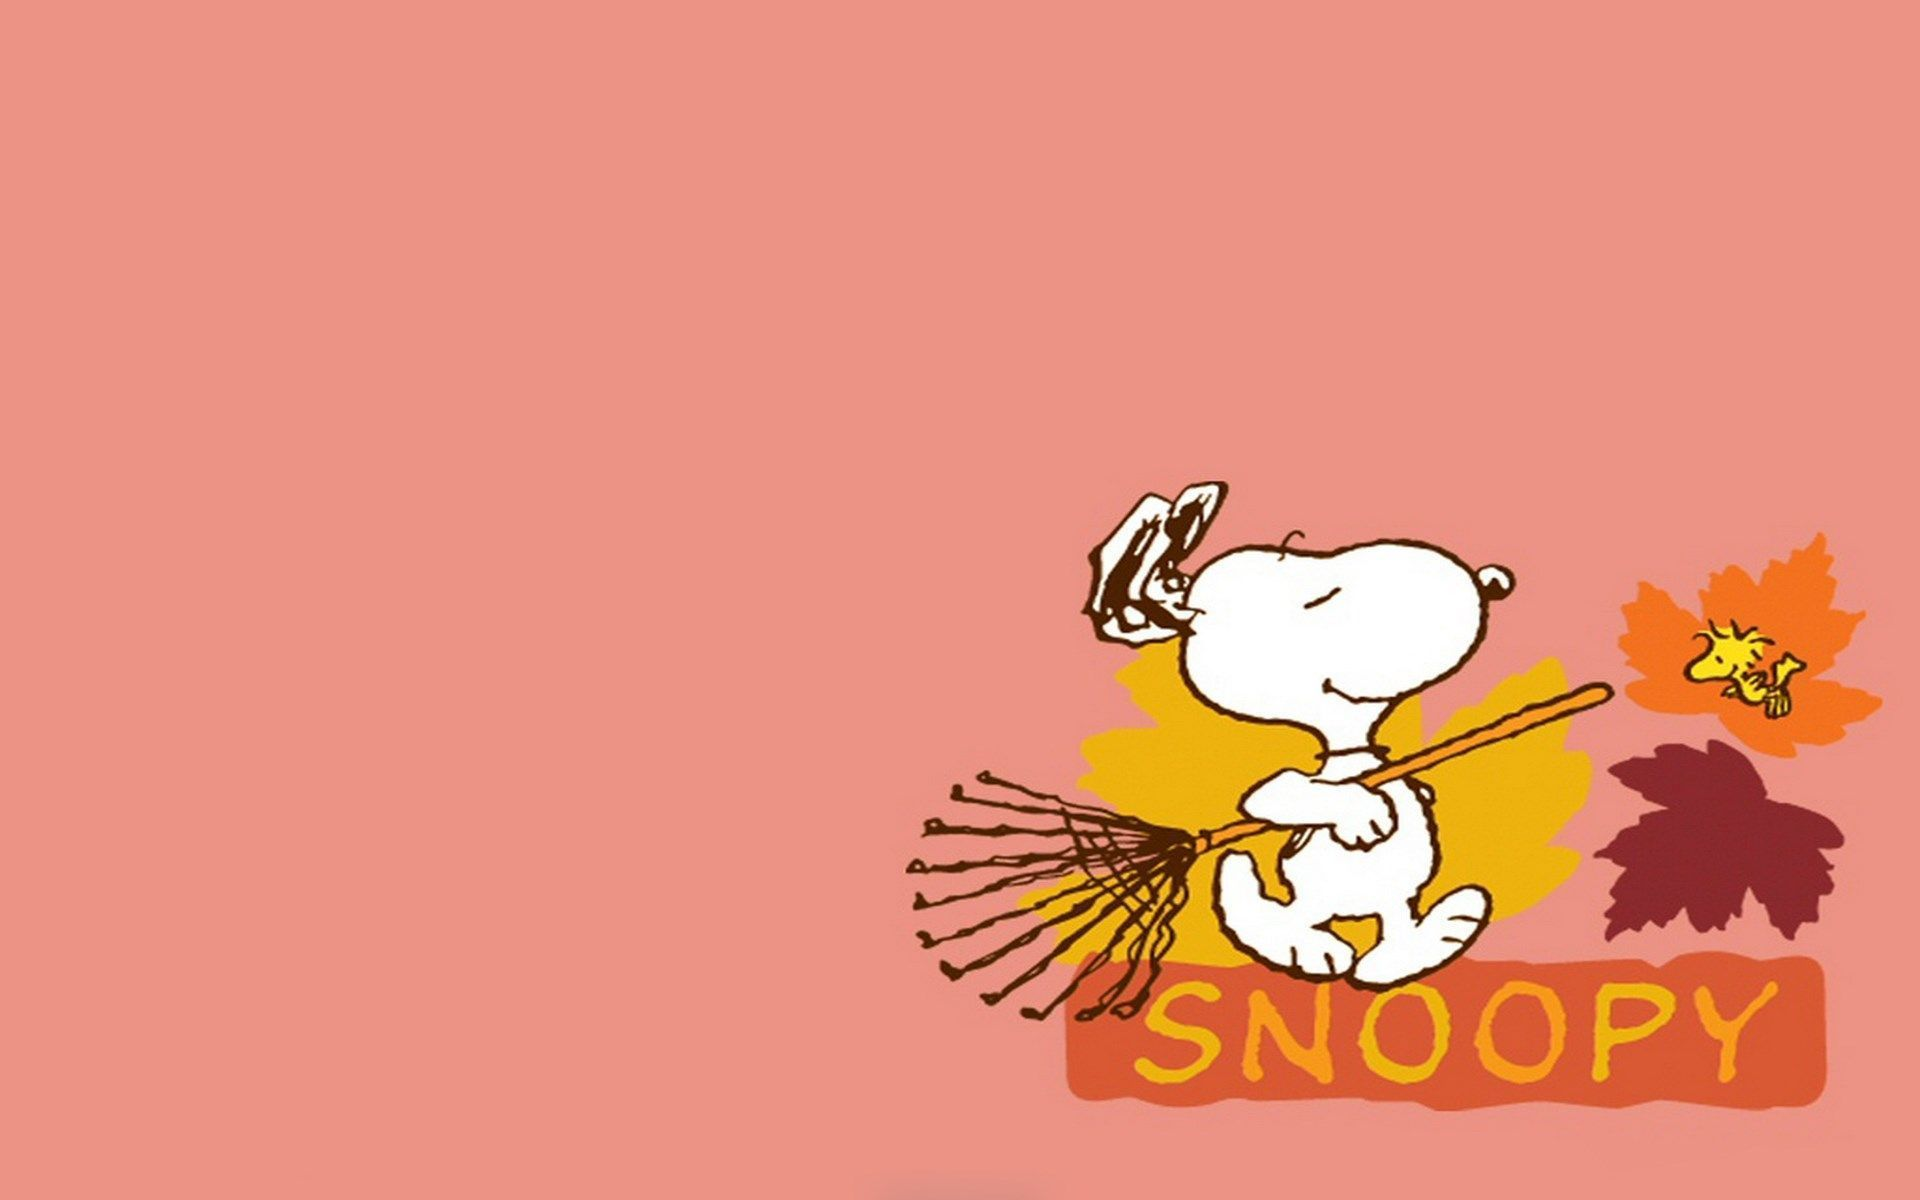 Snoopy Fall Wallpapers - Top Free